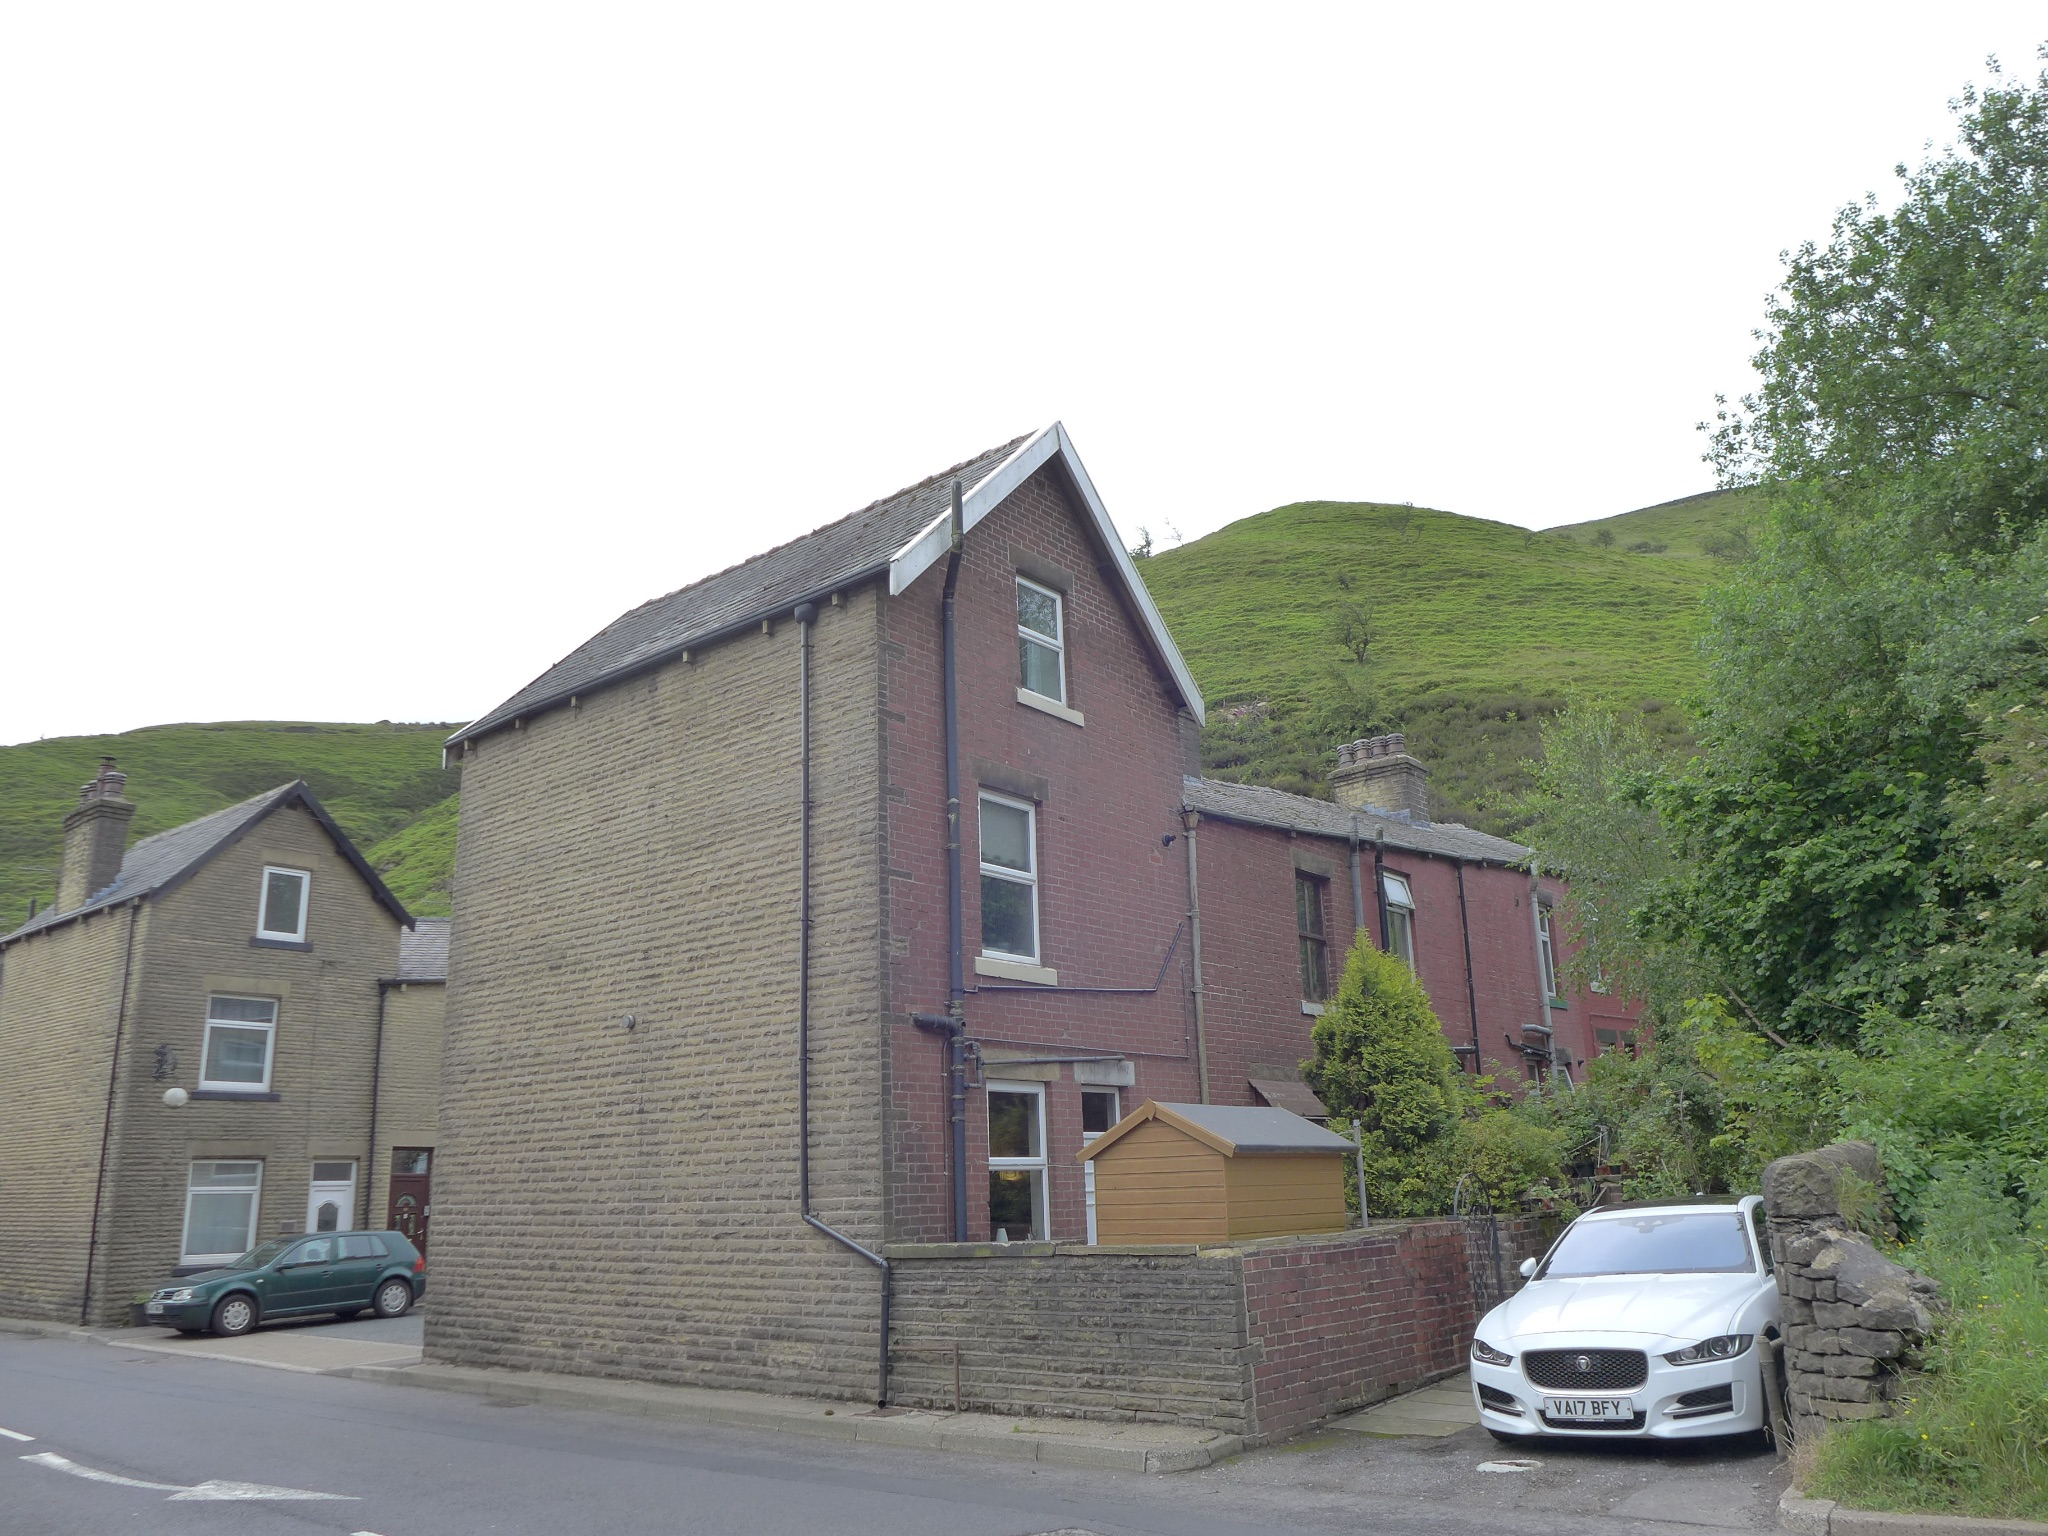 3 bedroom end terraced house For Sale in Todmorden - Photograph 19.